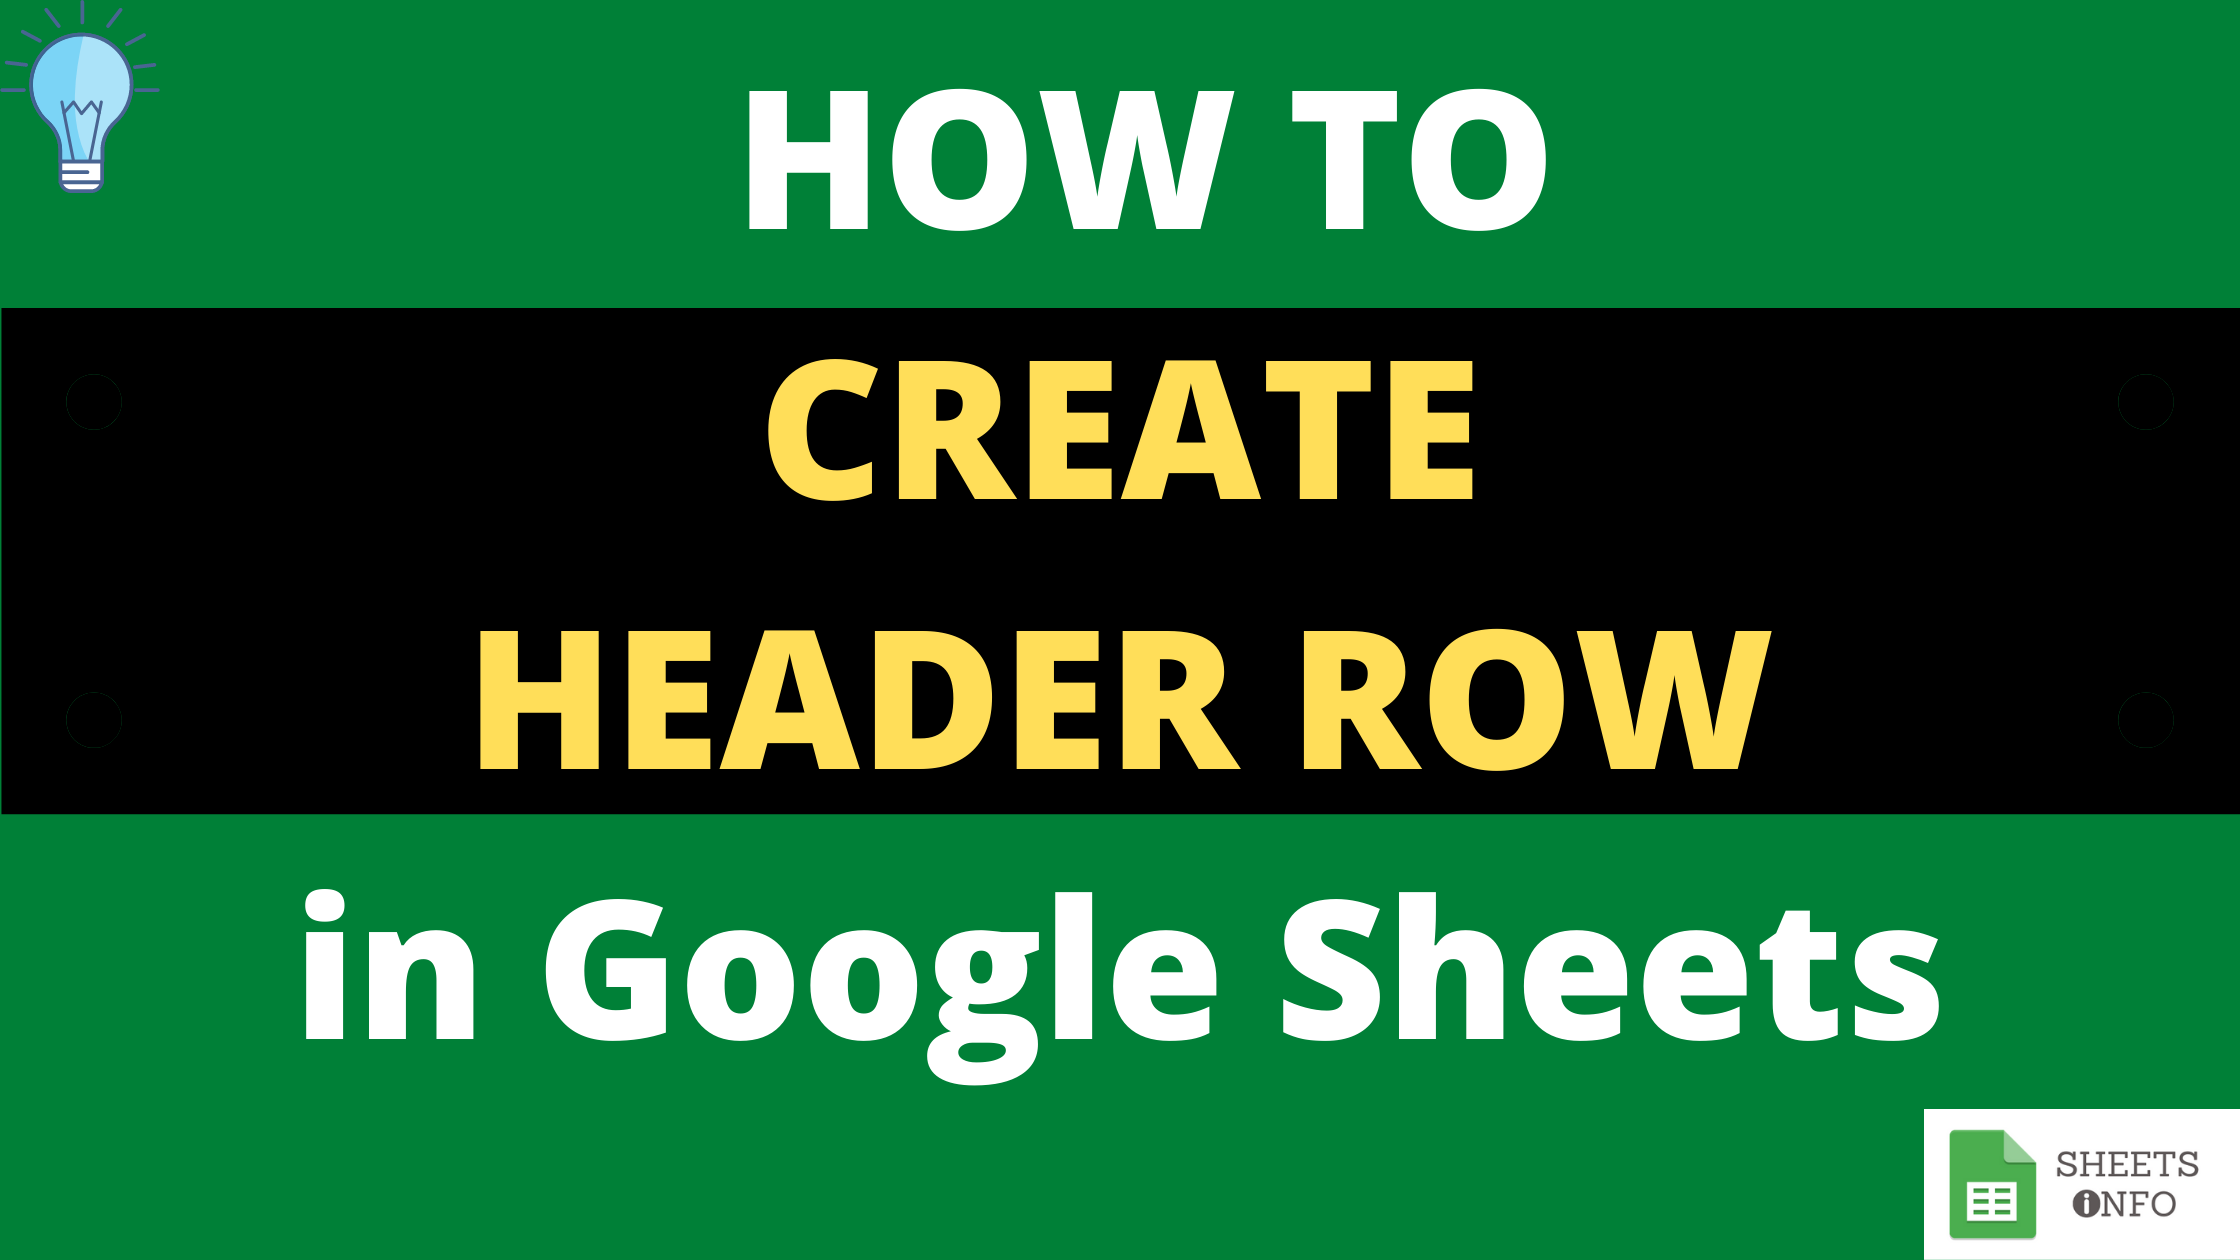 How to Create A Row Header in Google Sheets